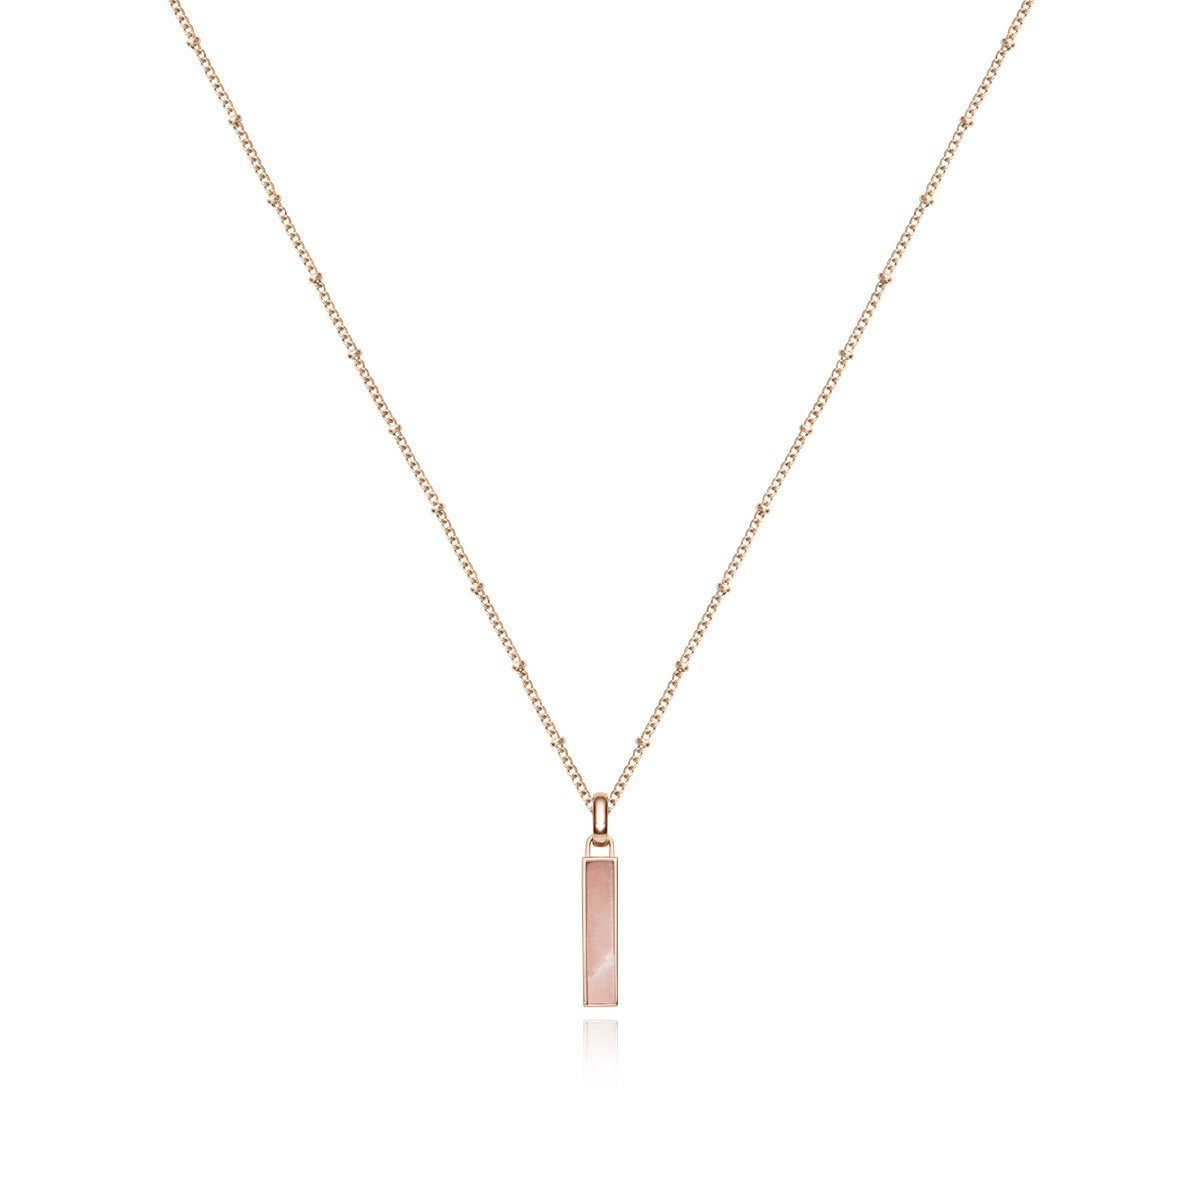 Small Lineare Bijou Charm Necklace (Rose Quartz/Blush)